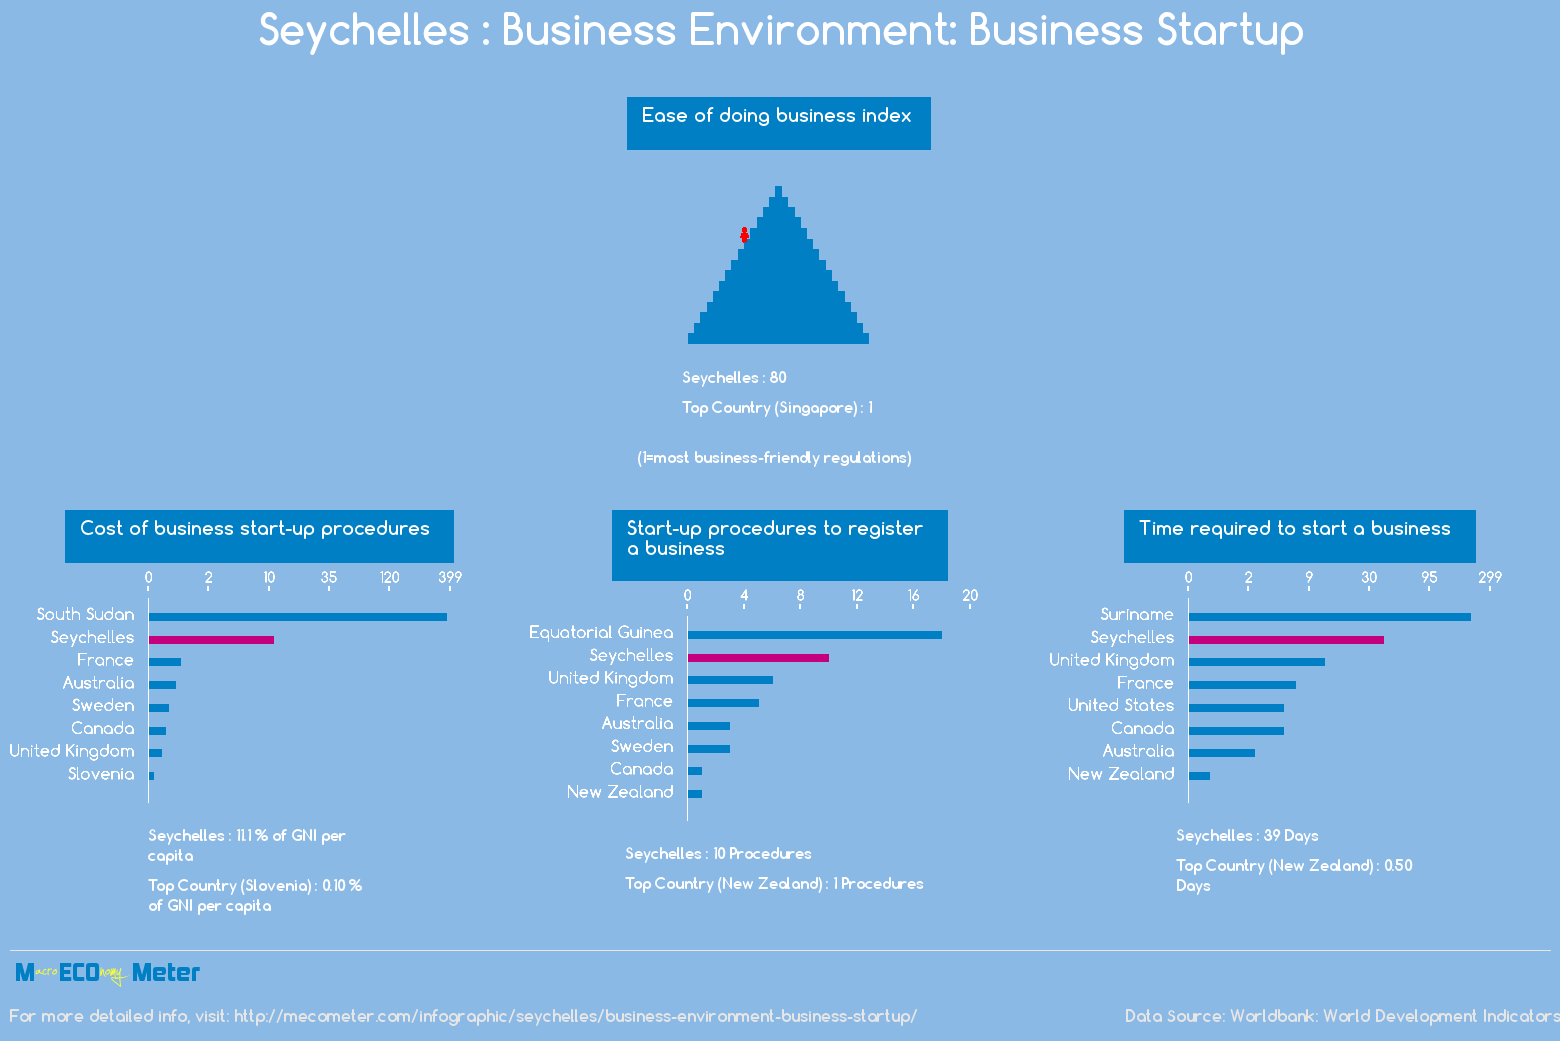 Seychelles : Business Environment: Business Startup